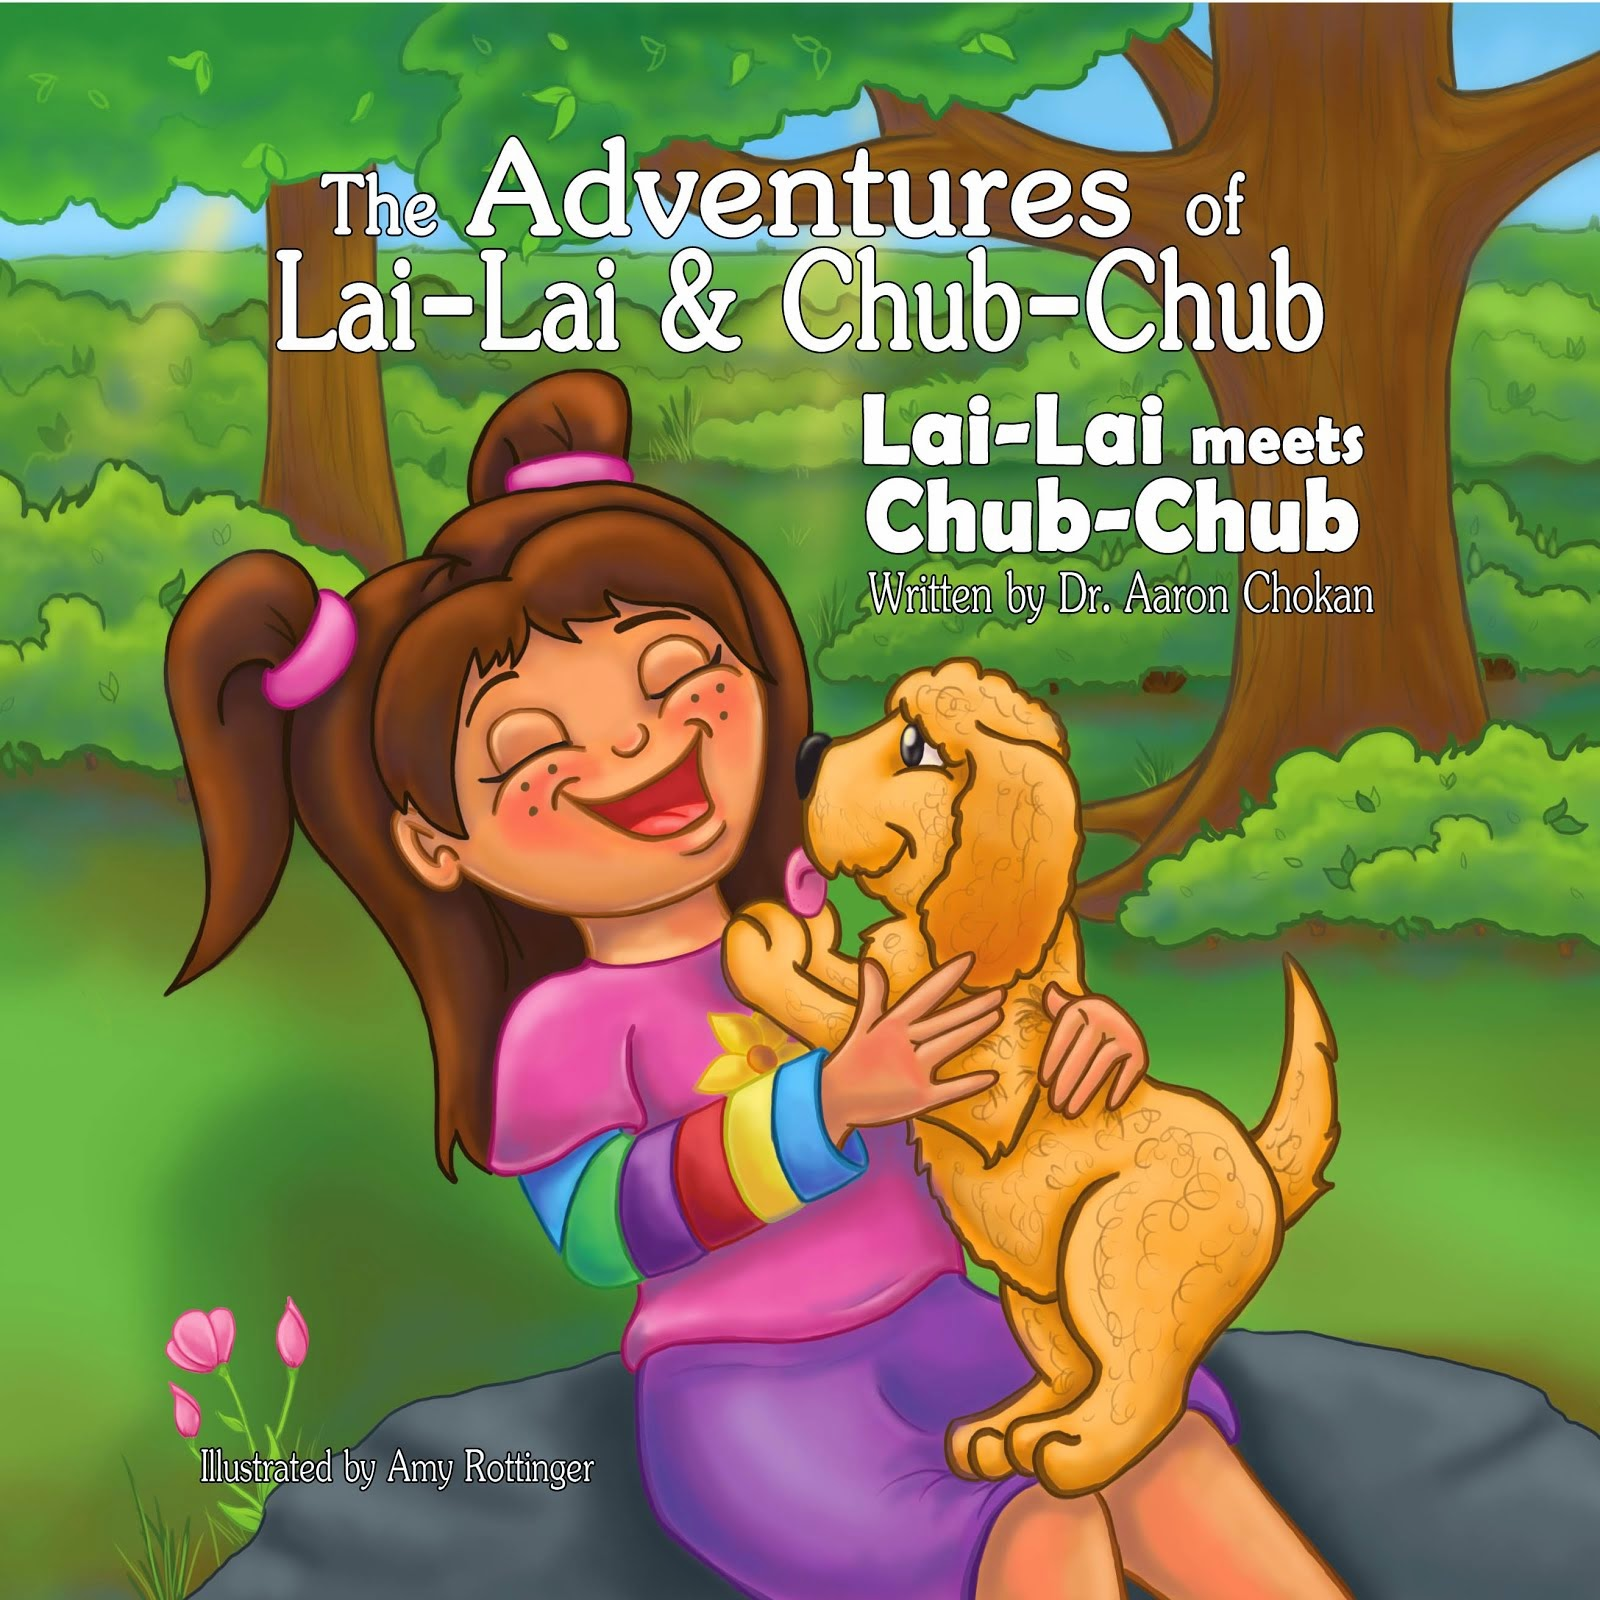 The Adventures of Lai-Lai and Chub-Chub